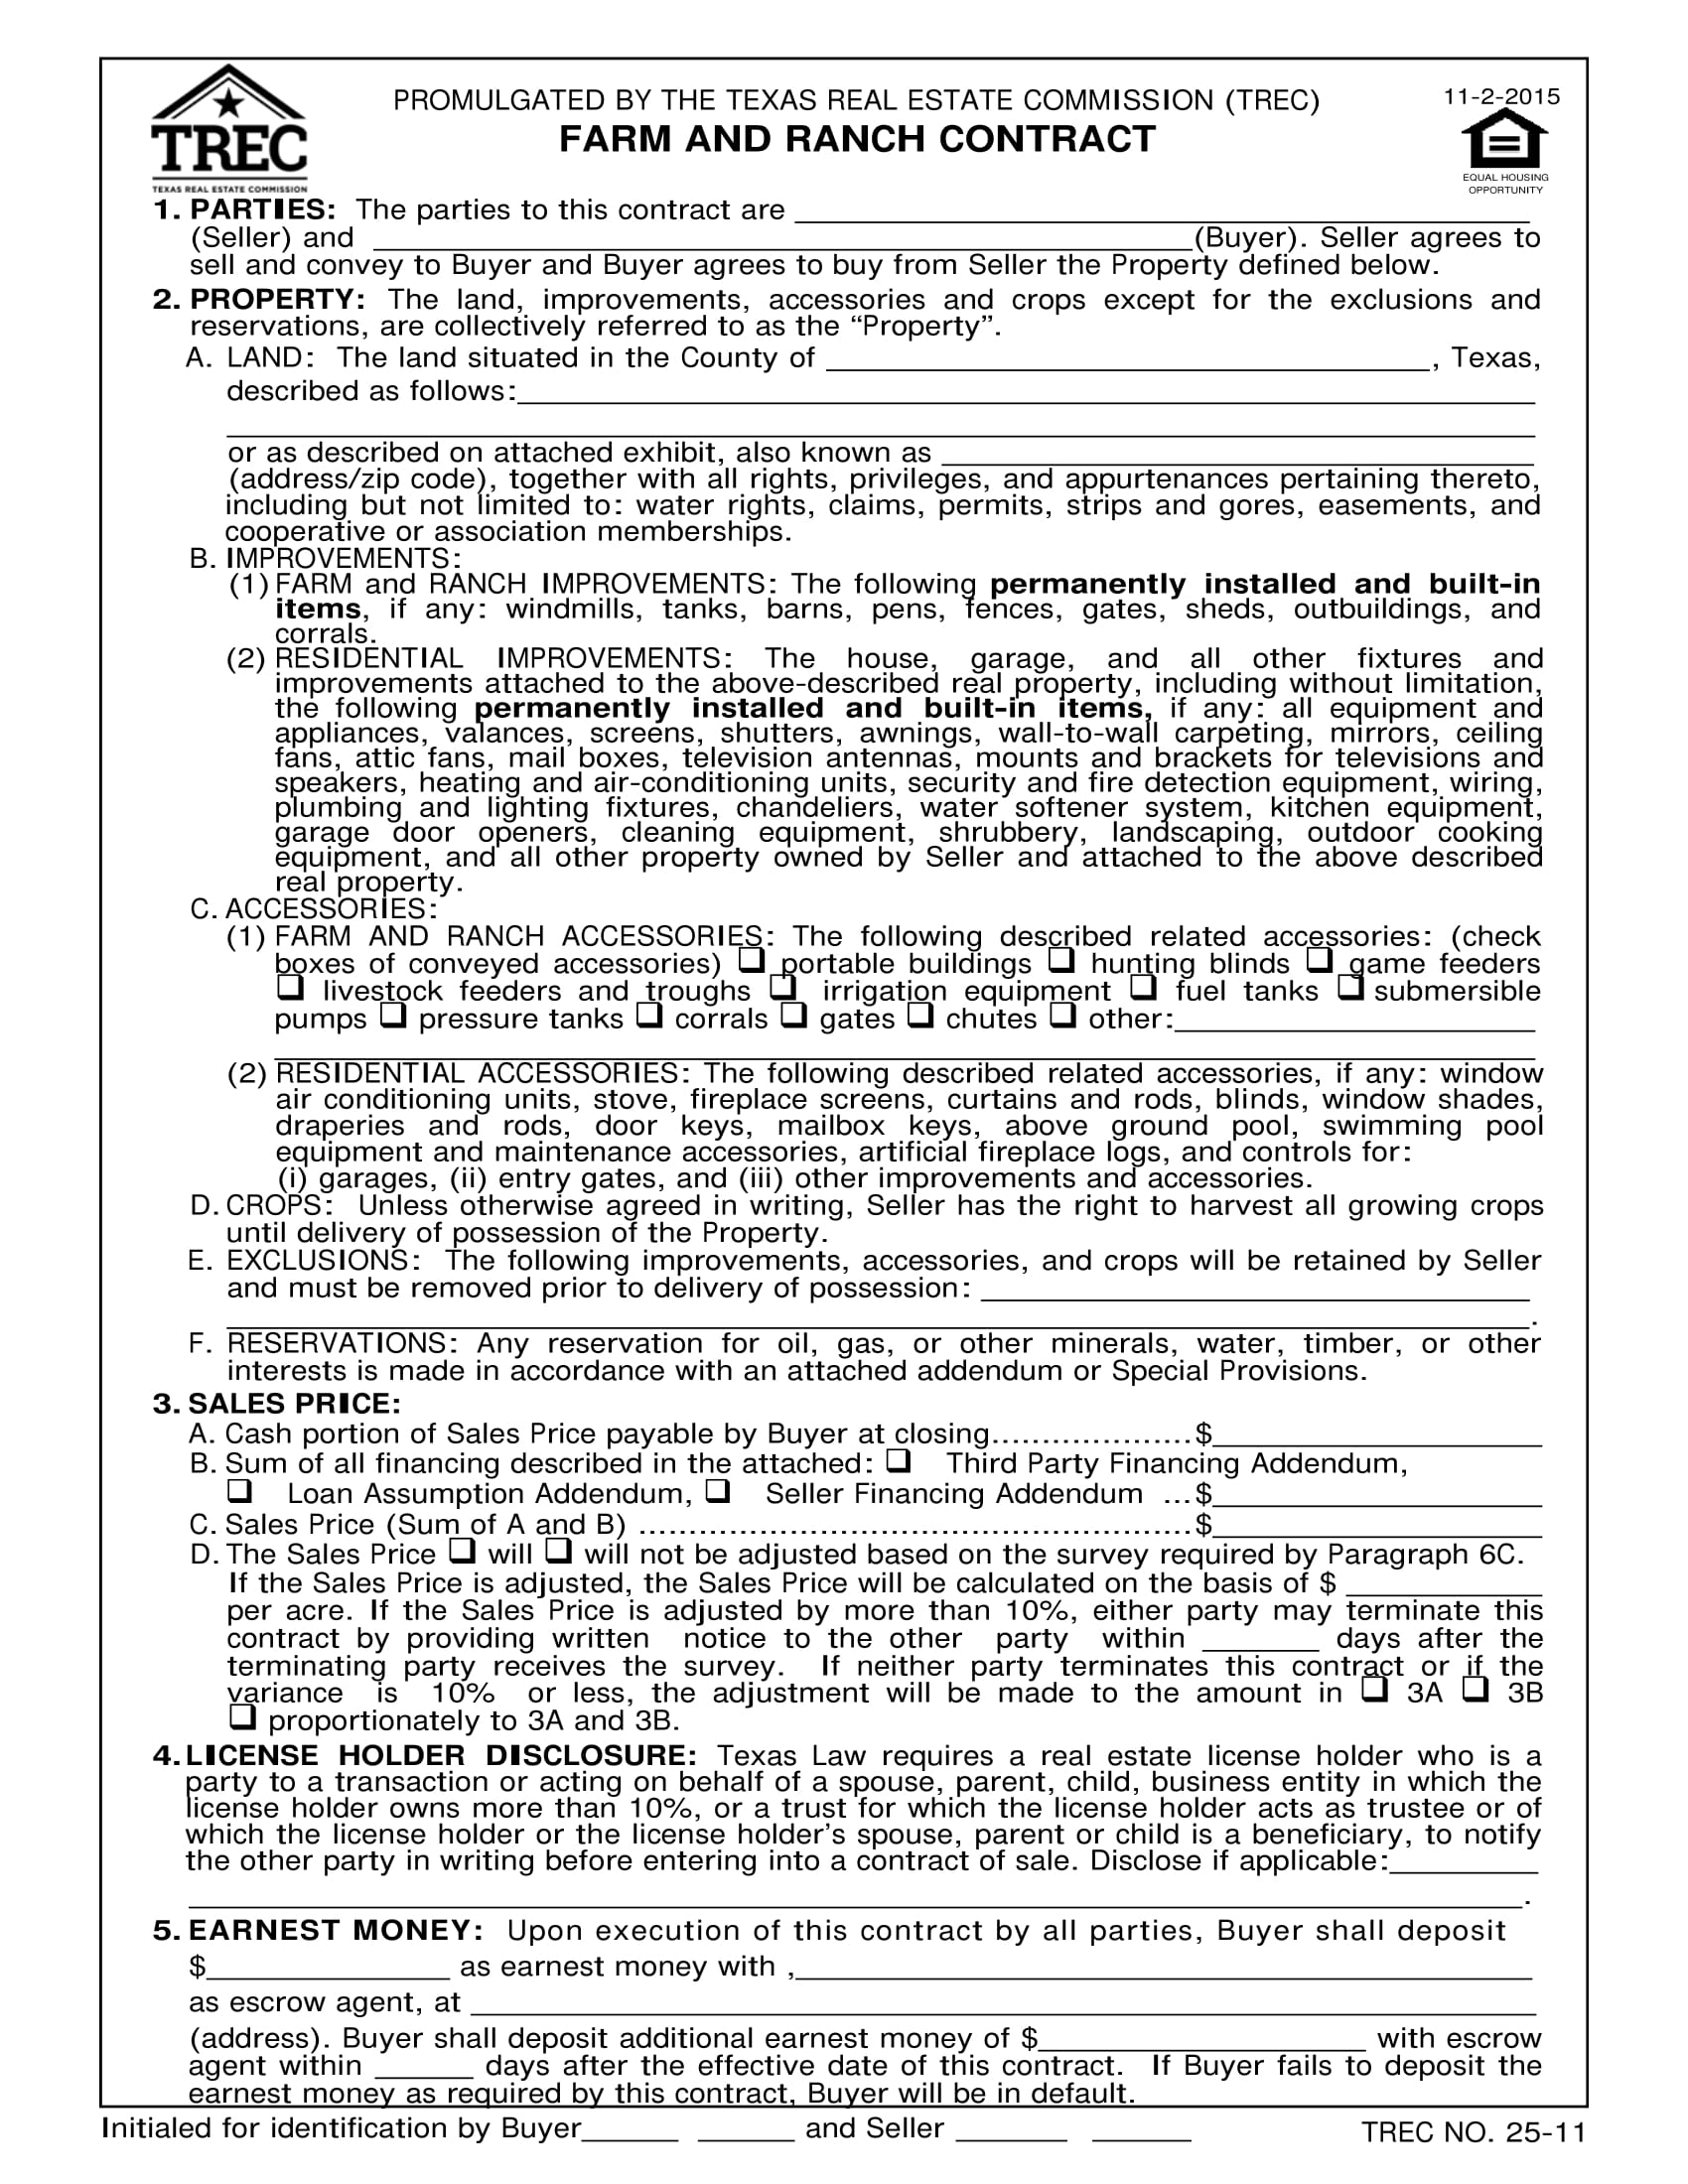 farm and ranch contract form 01